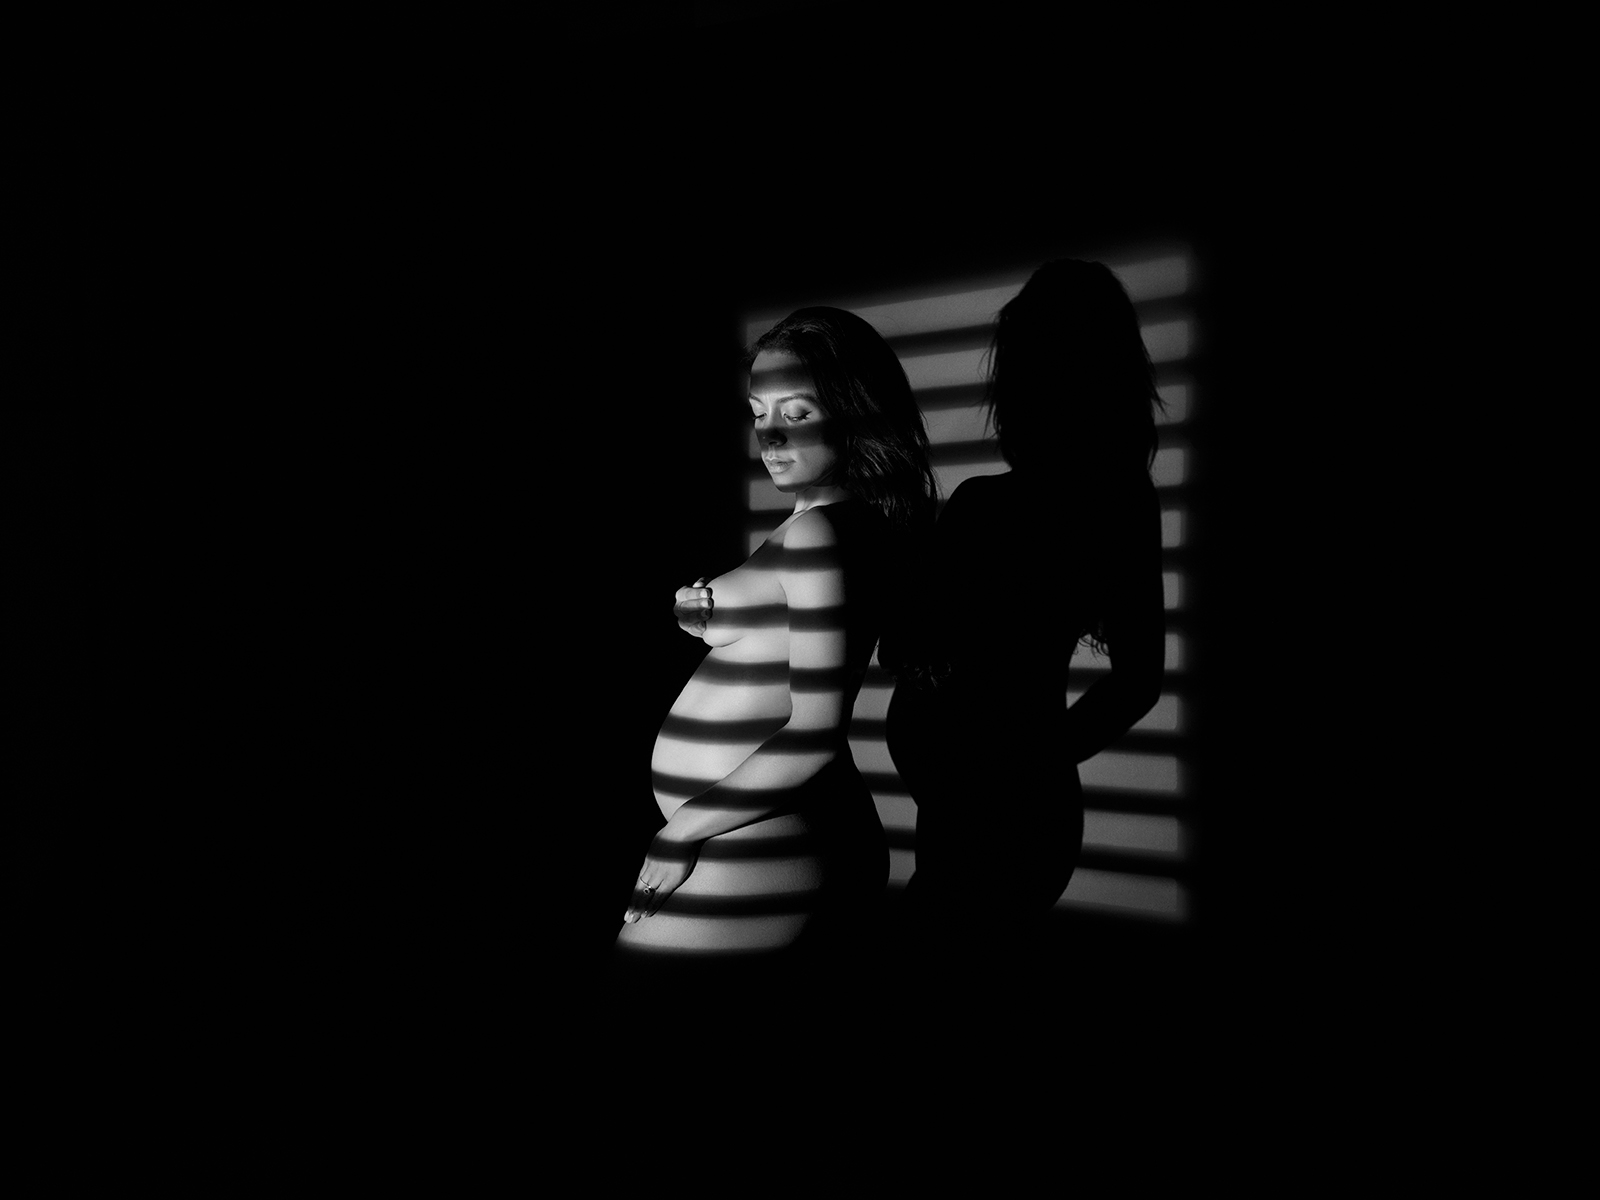 Black and white maternity photograph of a nude pregnant lady standing in the shadow of a Venetian blind. She is covering her breast with her hand.